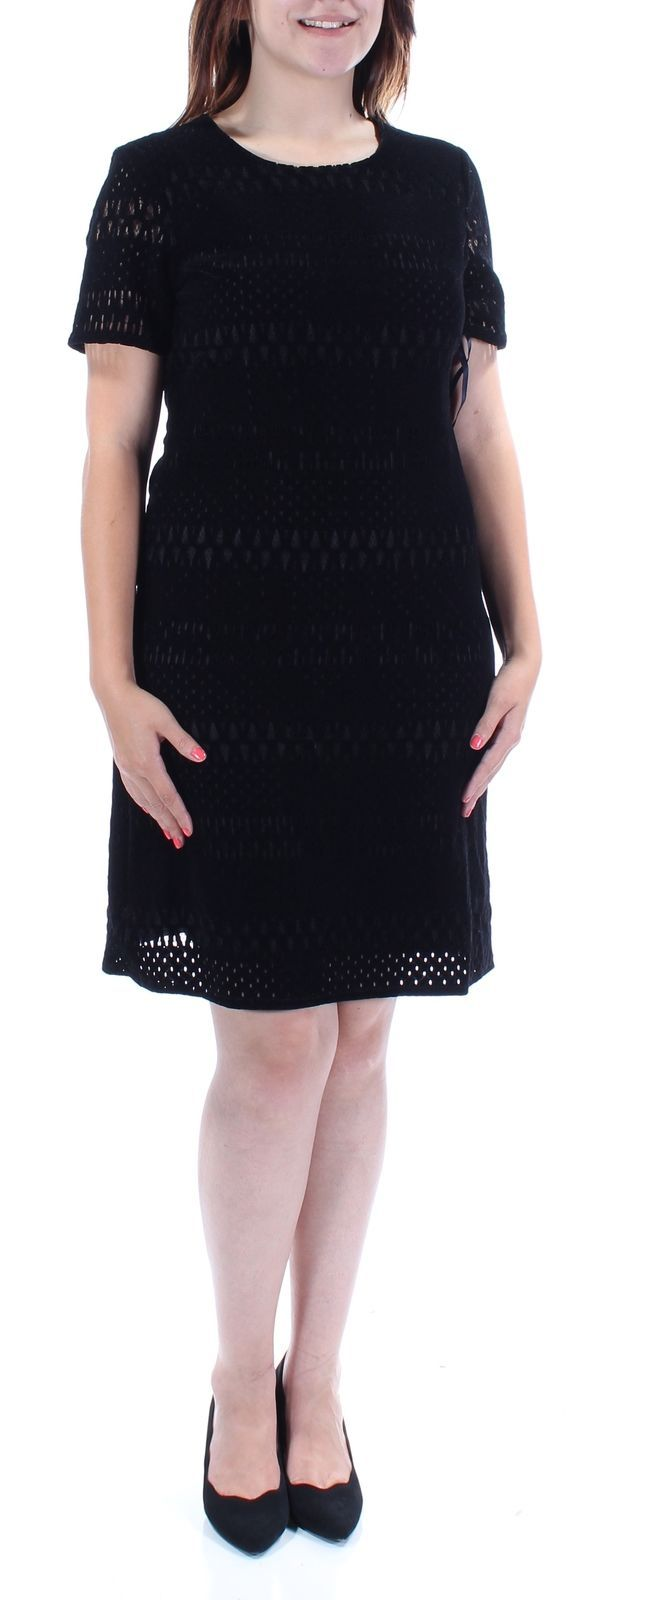 Cool Awesome TOMMY HILFIGER $149 Womens New 1362 Black Velvet Fit + Flare Dress 4 B+B  2018